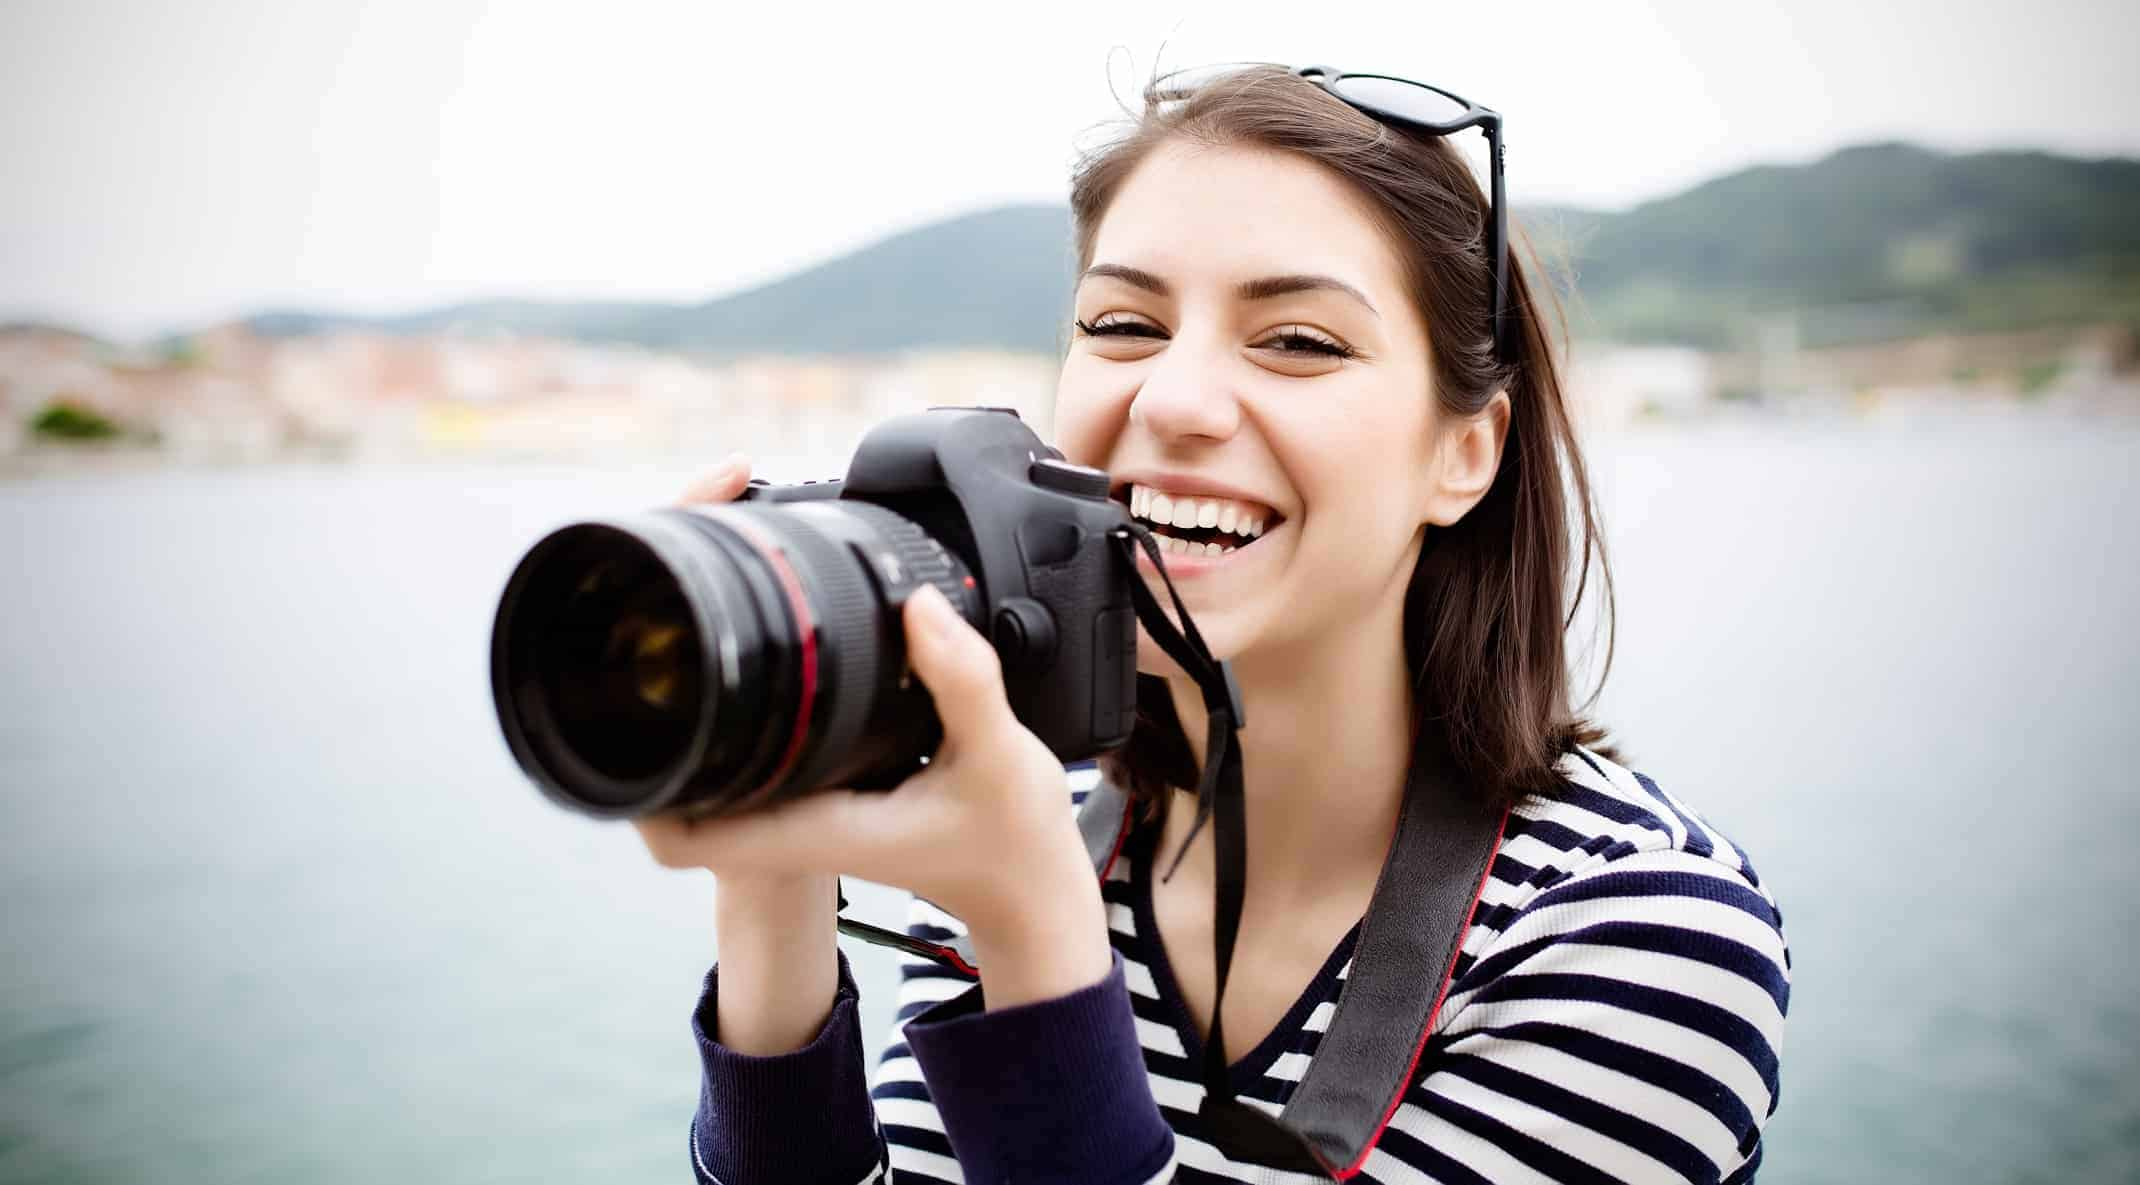 Before Buying a Best Seller DSLR, ask yourself what type of Photography Inspires You